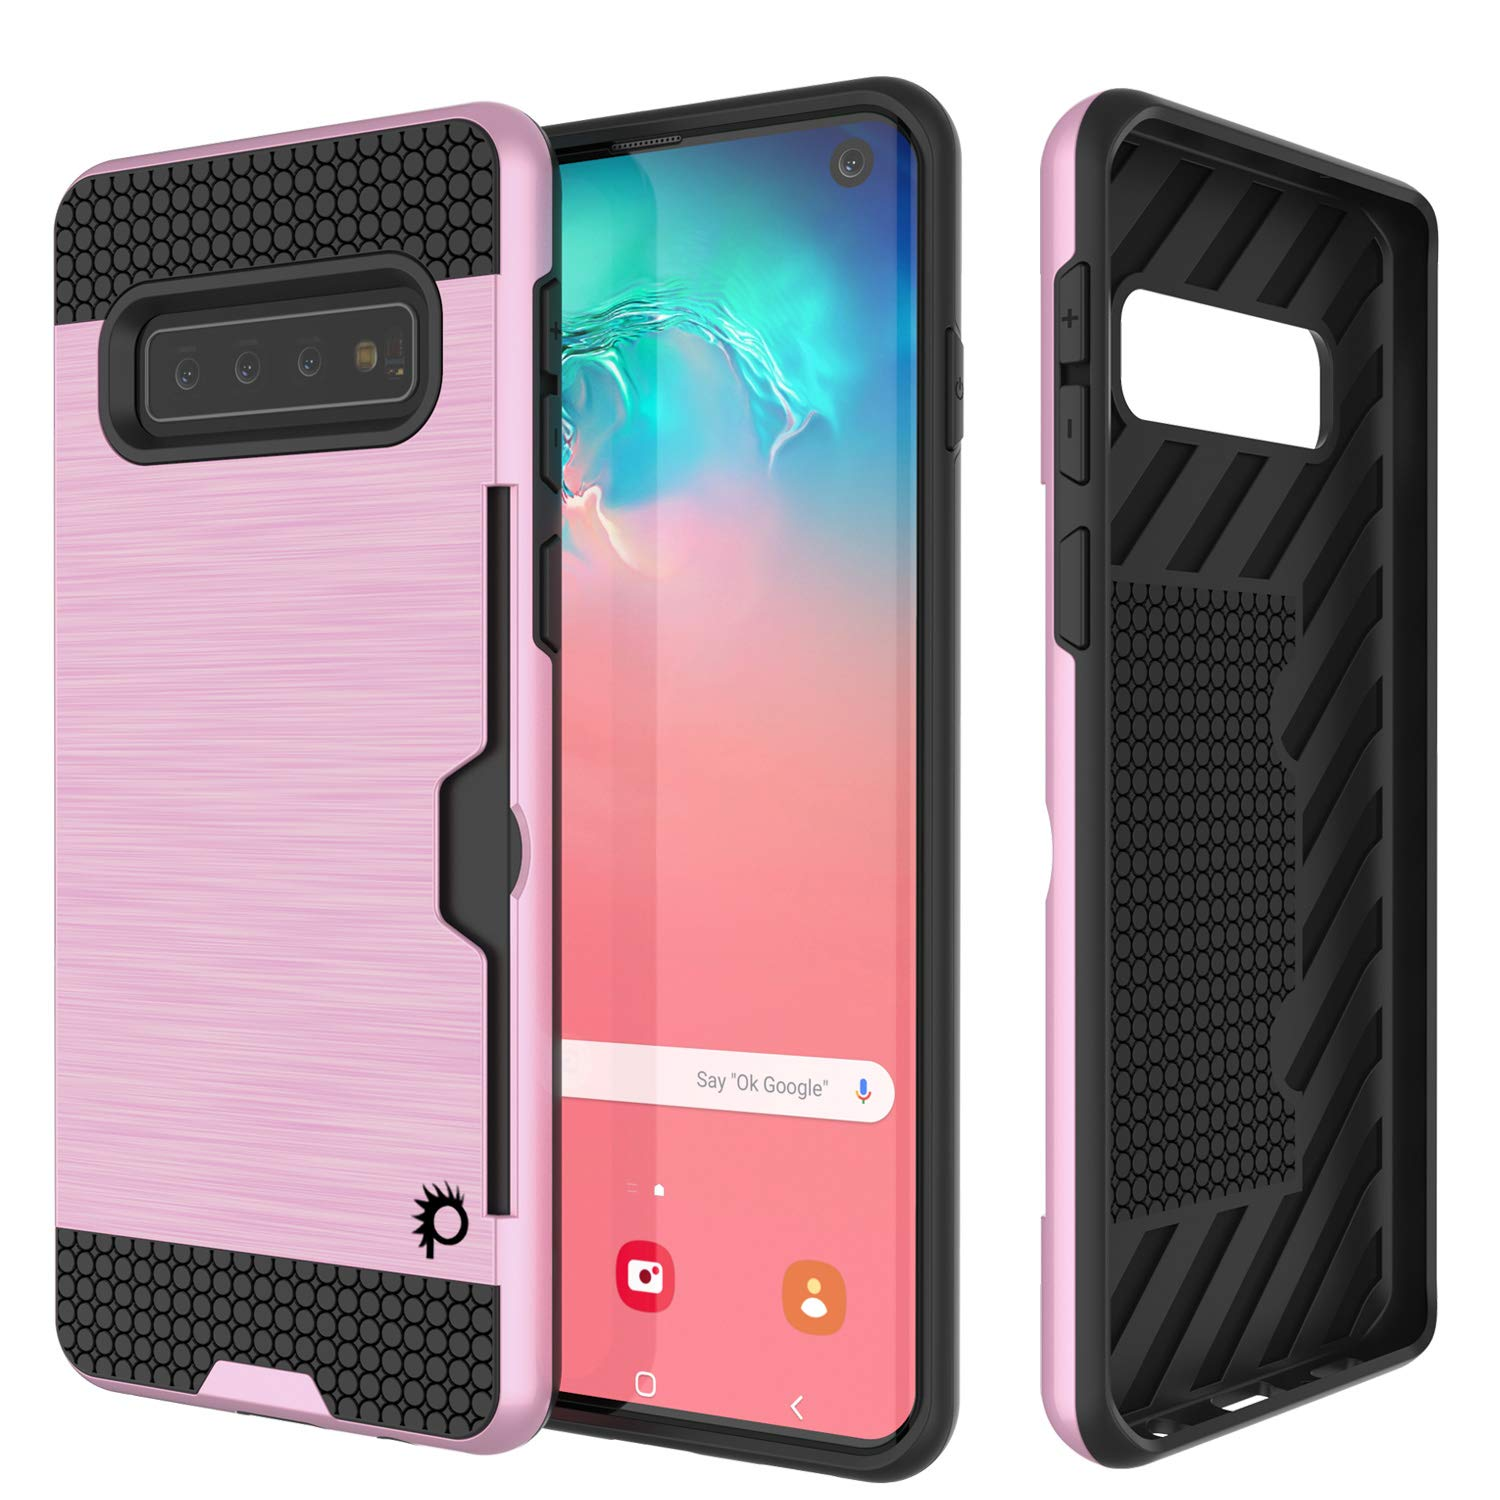 Galaxy S10 Case, PUNKcase [SLOT Series] [Slim Fit] Dual-Layer Armor Cover w/Integrated Anti-Shock System, Credit Card Slot [Pink]